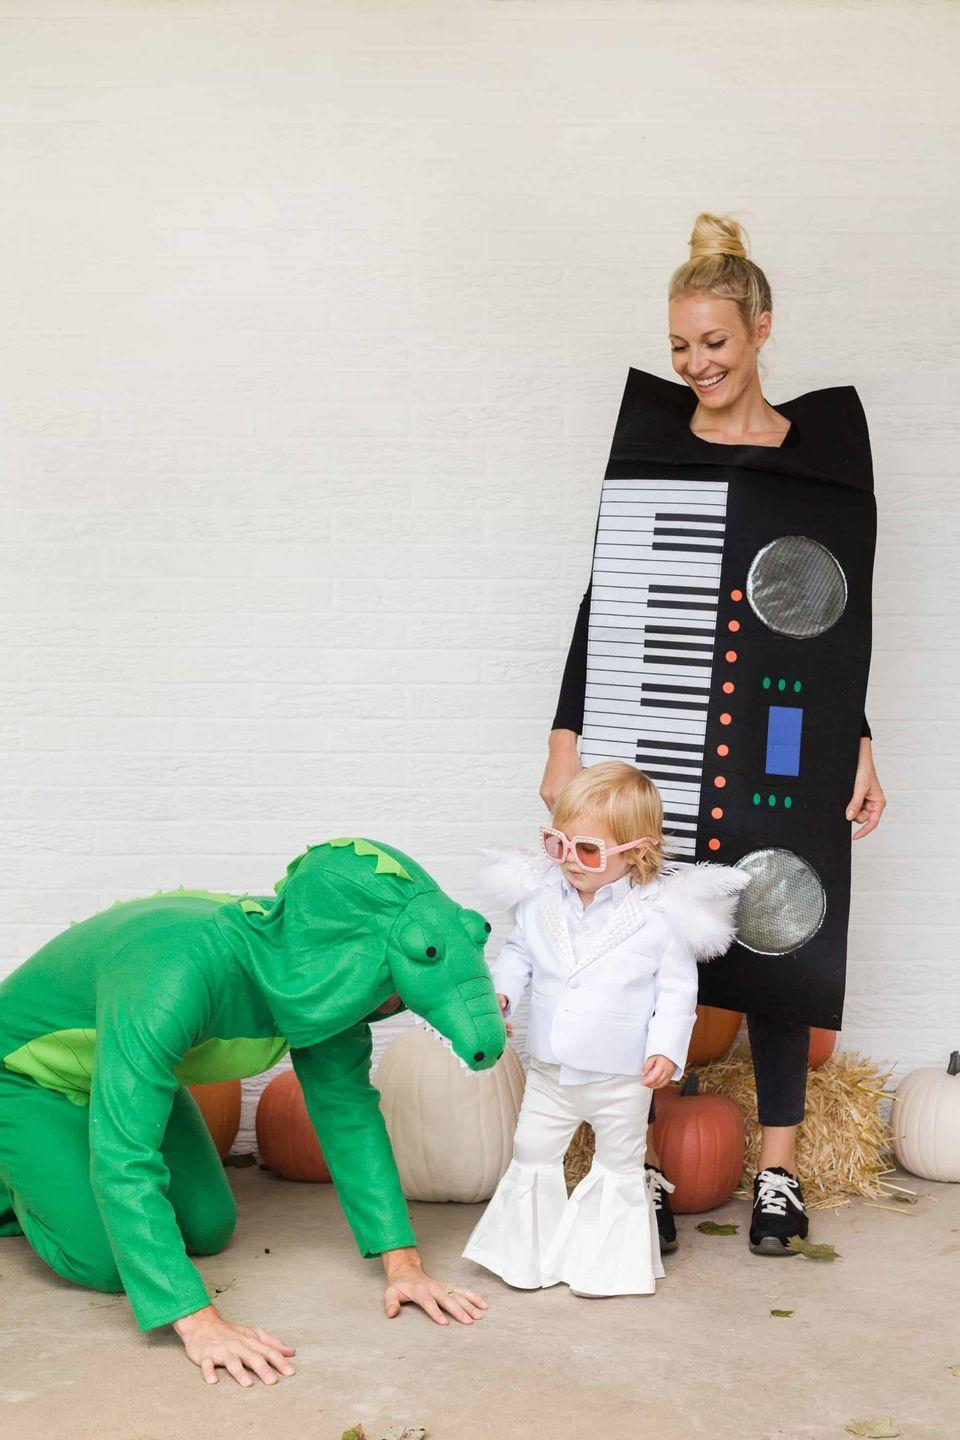 """<p>This adorable family costume brings Elton John's 1972 to hit """"Crocodile Rock"""" to life. </p><p><strong>Find out how it was made at <a href=""""https://abeautifulmess.com/crocodile-rock-family-halloween-costume/"""" rel=""""nofollow noopener"""" target=""""_blank"""" data-ylk=""""slk:A Beautiful Mess"""" class=""""link rapid-noclick-resp"""">A Beautiful Mess</a>. </strong></p><p><strong><a class=""""link rapid-noclick-resp"""" href=""""https://go.redirectingat.com?id=74968X1596630&url=https%3A%2F%2Fwww.walmart.com%2Fip%2FAdult-Piano-Keyboard-Costume%2F108375549%3Firgwc%3D1%26sourceid%3Dimp_xovWUVVskxyOUWEwUx0Mo3bzUkByGTVHqXzVwU0%26veh%3Daff%26wmlspartner%3Dimp_116548%26clickid%3DxovWUVVskxyOUWEwUx0Mo3bzUkByGTVHqXzVwU0%26affiliates_ad_id%3D565706%26campaign_id%3D9383&sref=https%3A%2F%2Fwww.countryliving.com%2Fdiy-crafts%2Fg22500148%2F70s-costumes%2F"""" rel=""""nofollow noopener"""" target=""""_blank"""" data-ylk=""""slk:SHOP KEYBOARD COSTUME"""">SHOP KEYBOARD COSTUME</a><br></strong></p>"""